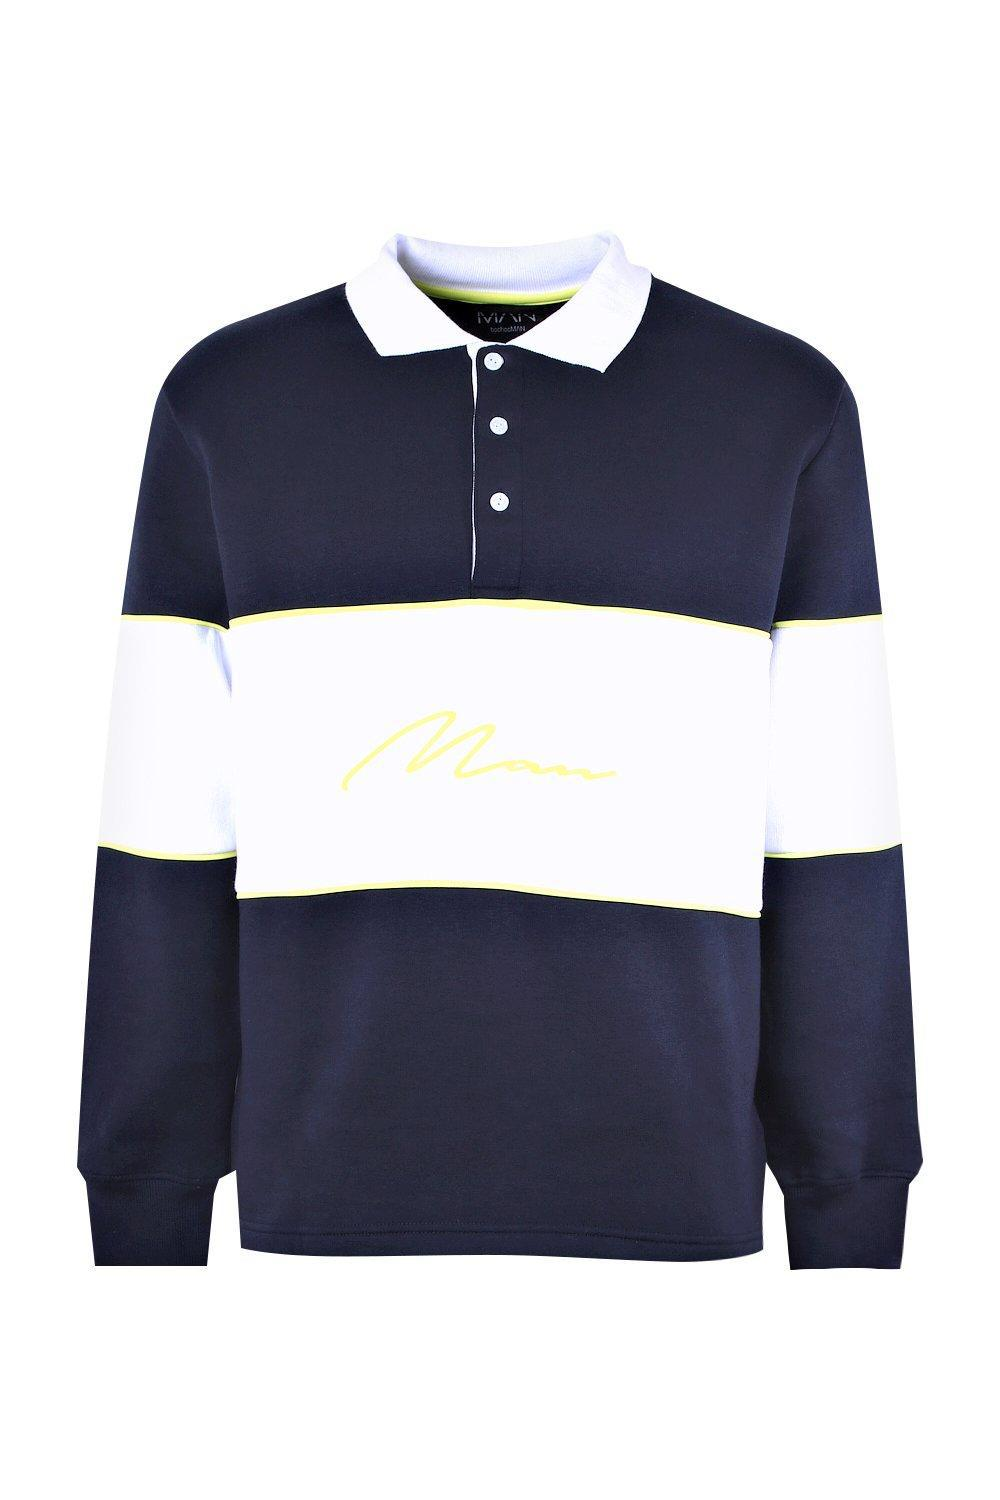 BoohooMAN Denim Neon Man Signature Colour Block Rugby Polo in Navy (Blue) for Men